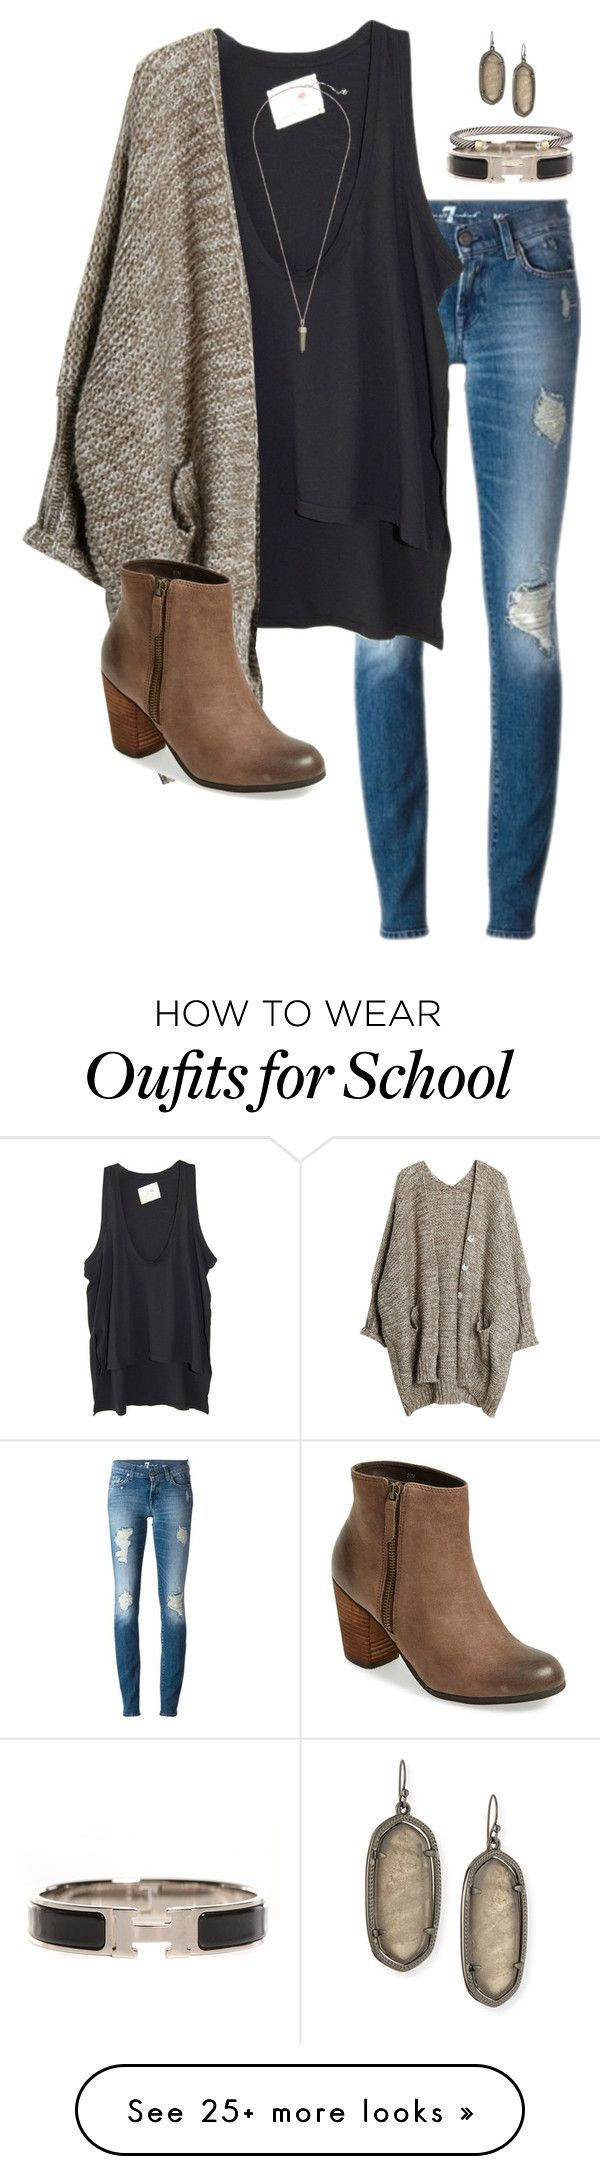 Winter cute outfits for school polyvore photo